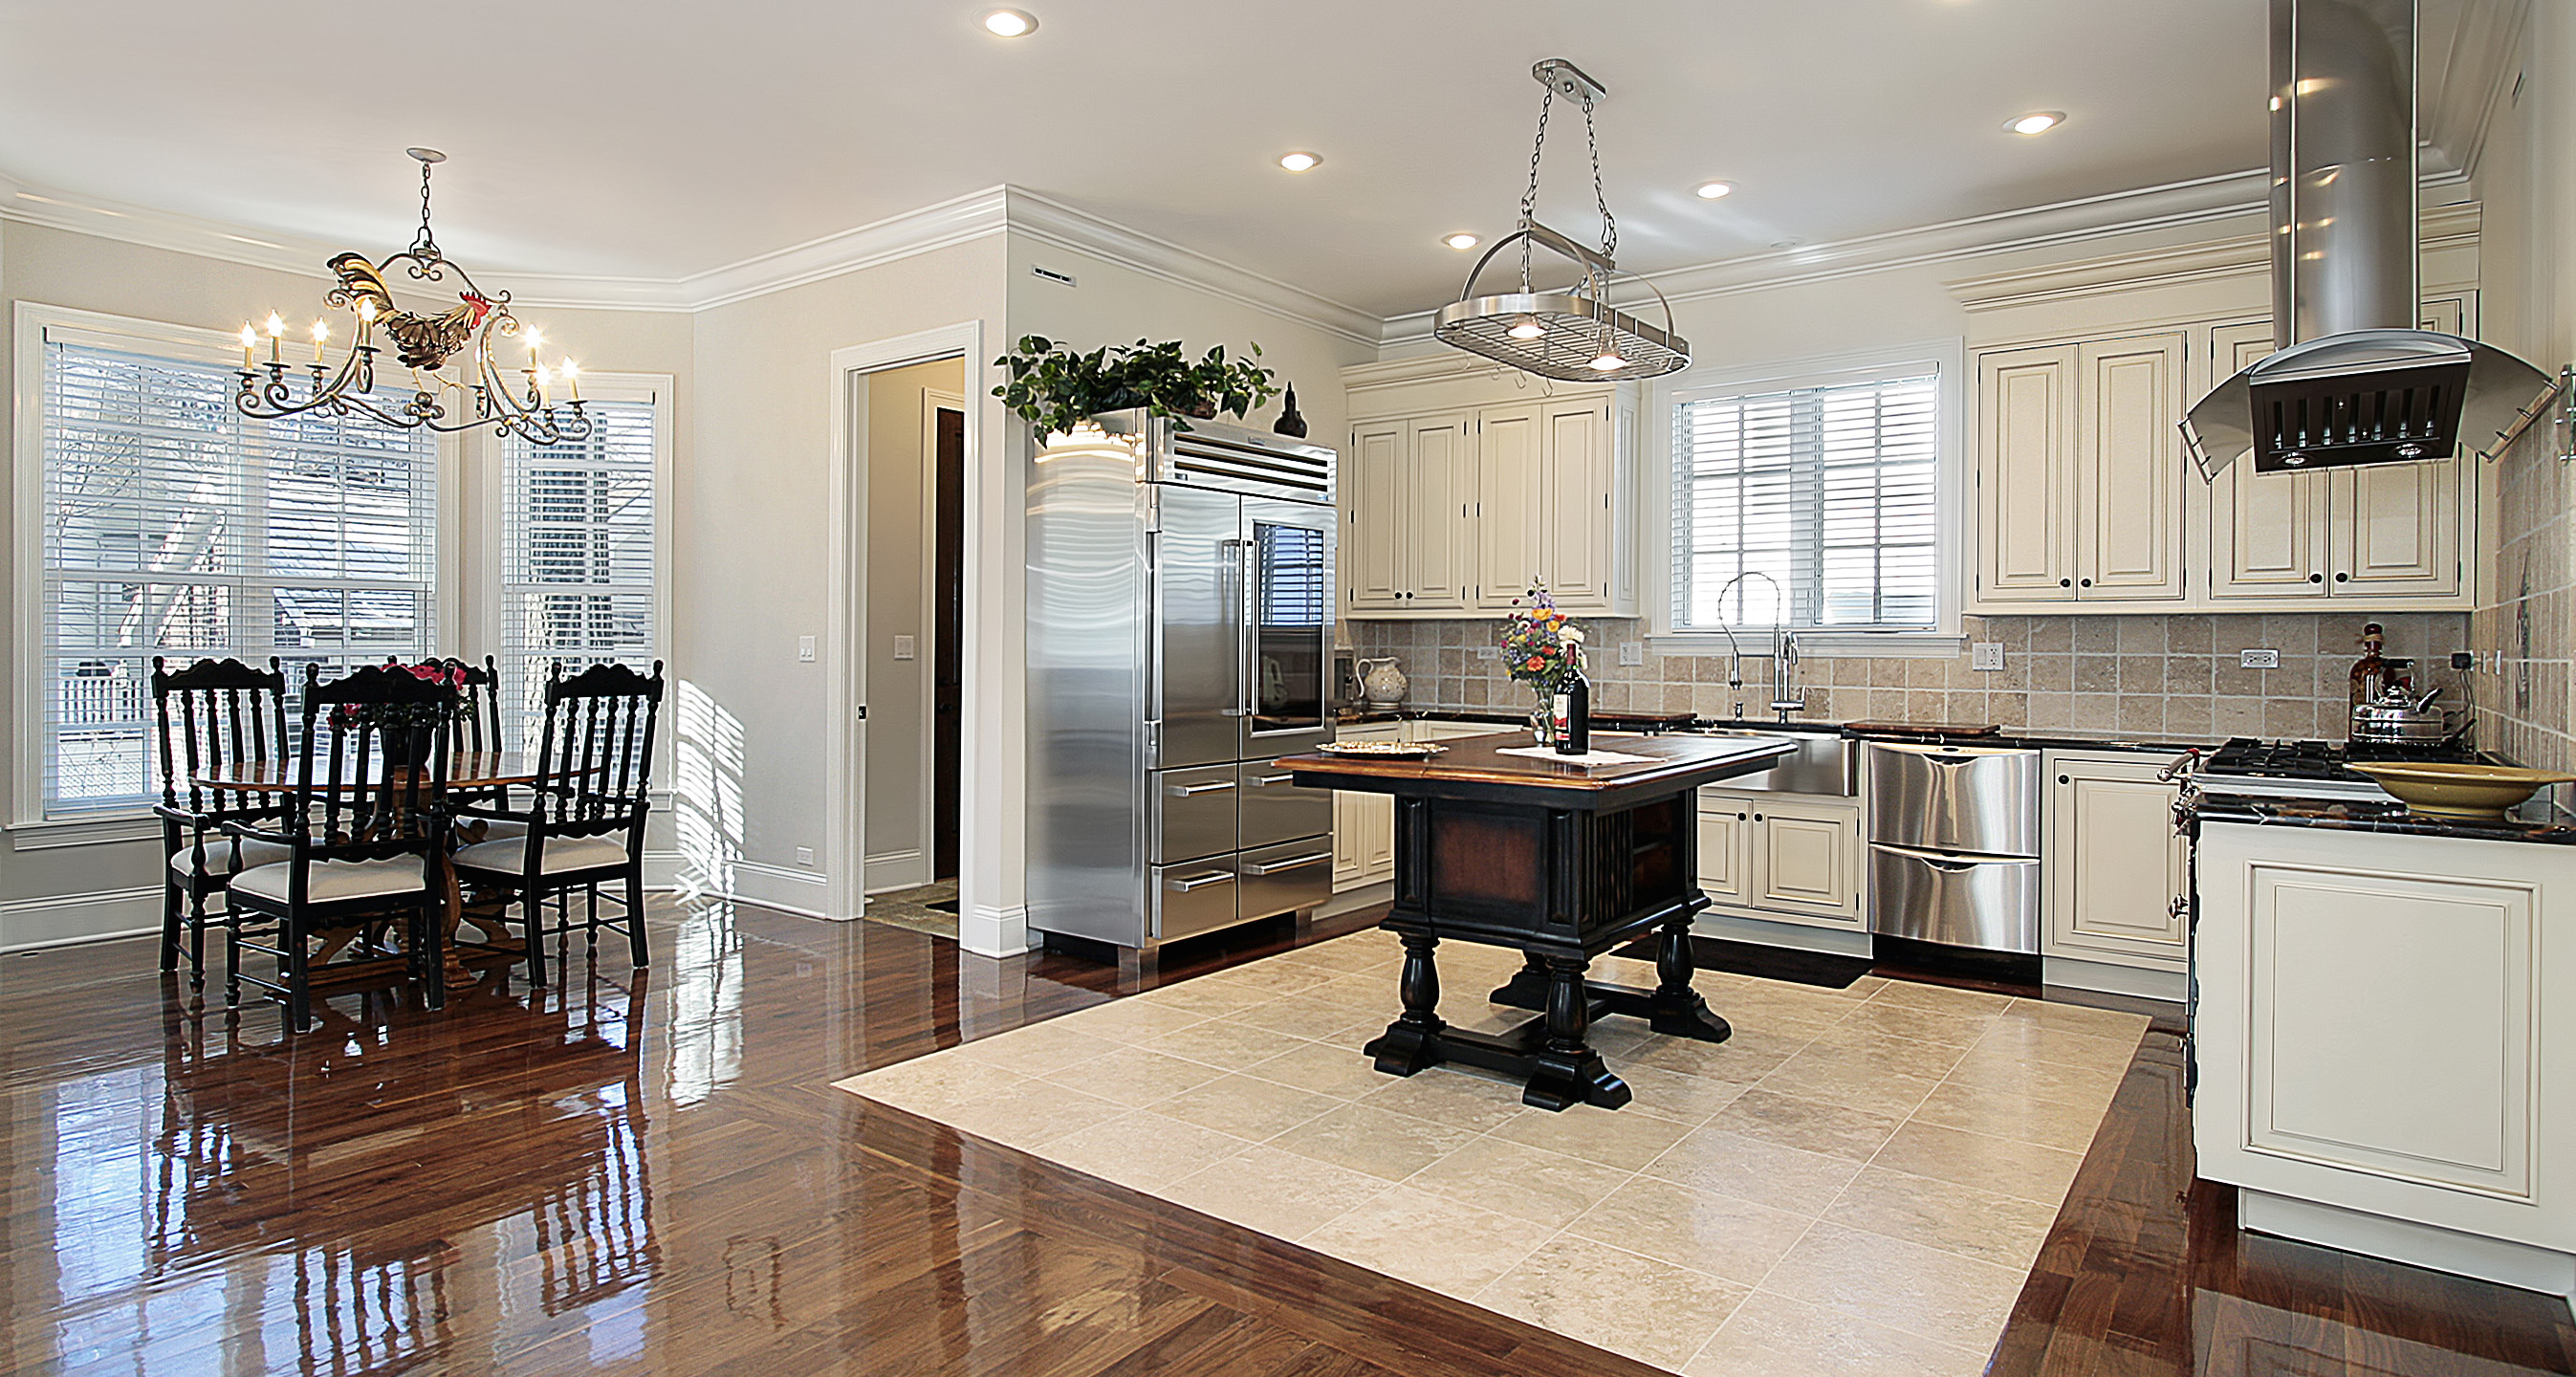 Real Estate in Northern Virginia and Shenandoah Valley